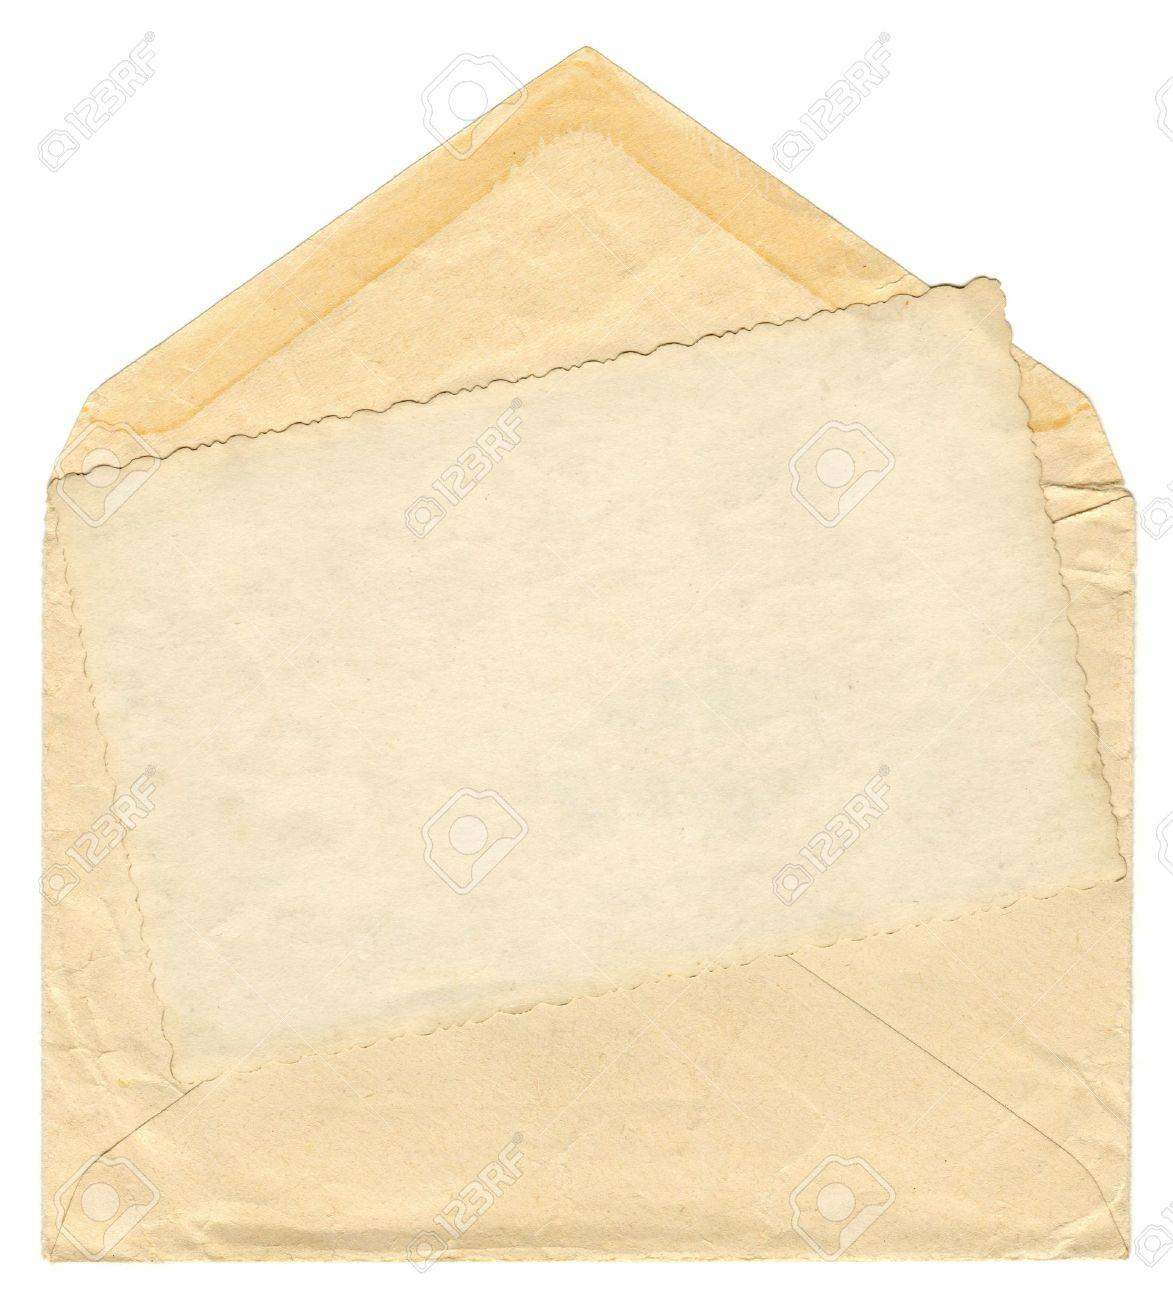 Vintage envelope Stock Photo - 9362710